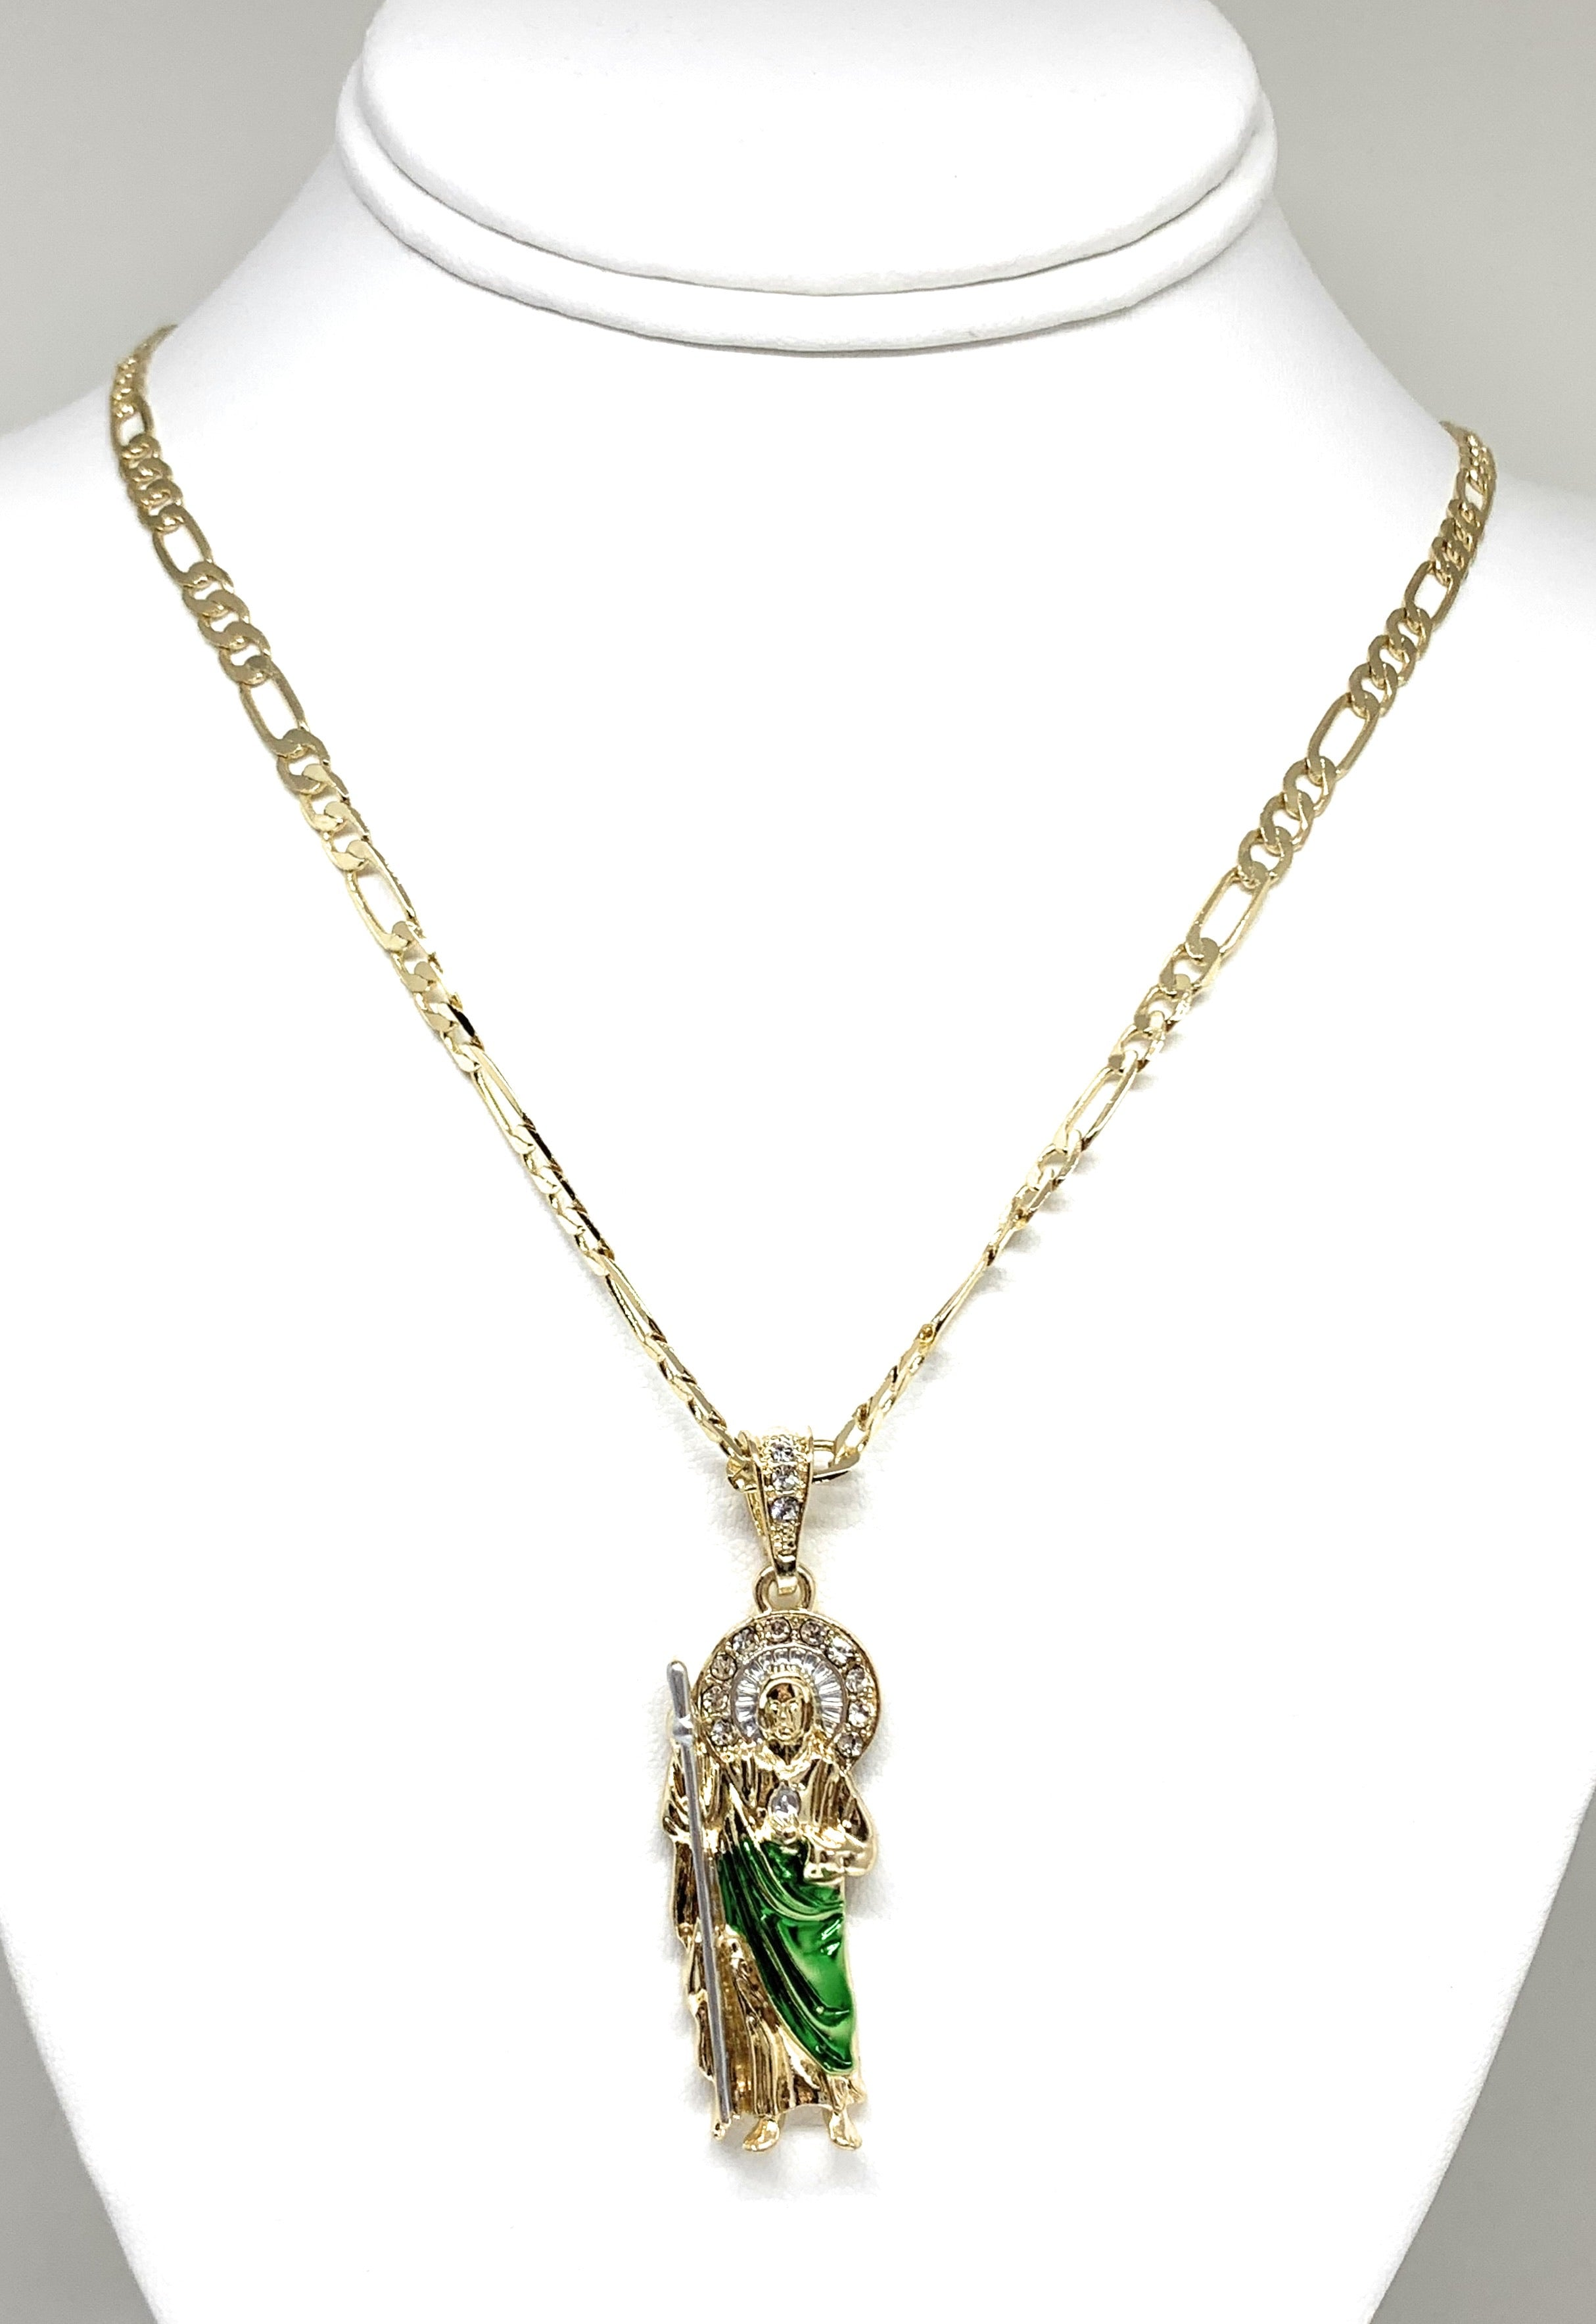 Gold Plated Saint Jude Pendant Green CZ Necklace Figaro San Judas Tadeo Medalla